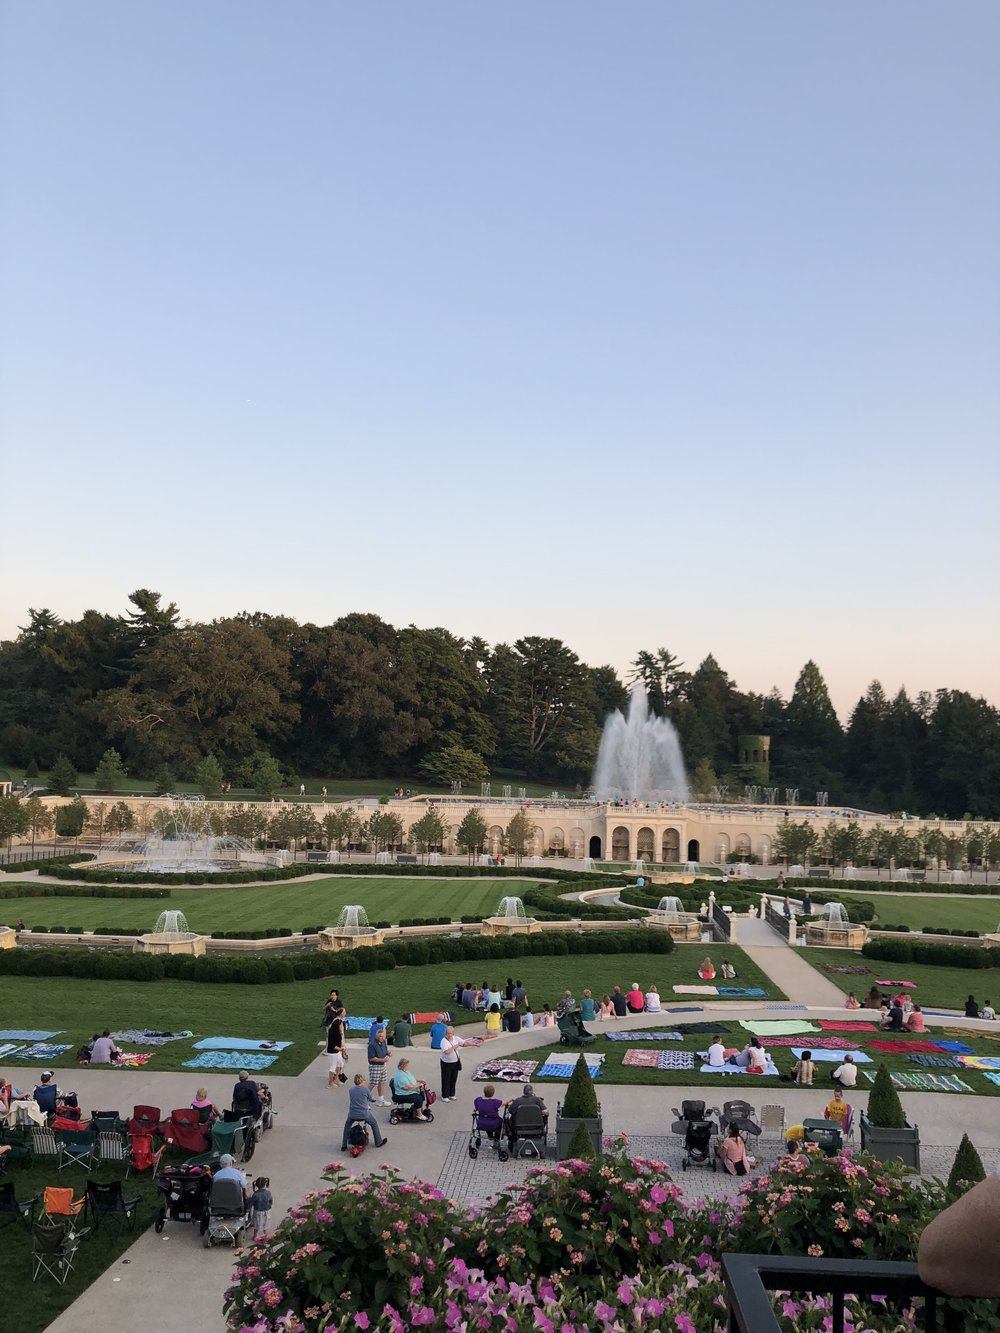 Fountains at Longwood Gardens Evening Stroll from Farmcoast Editorial and Meg Summerfield Studio